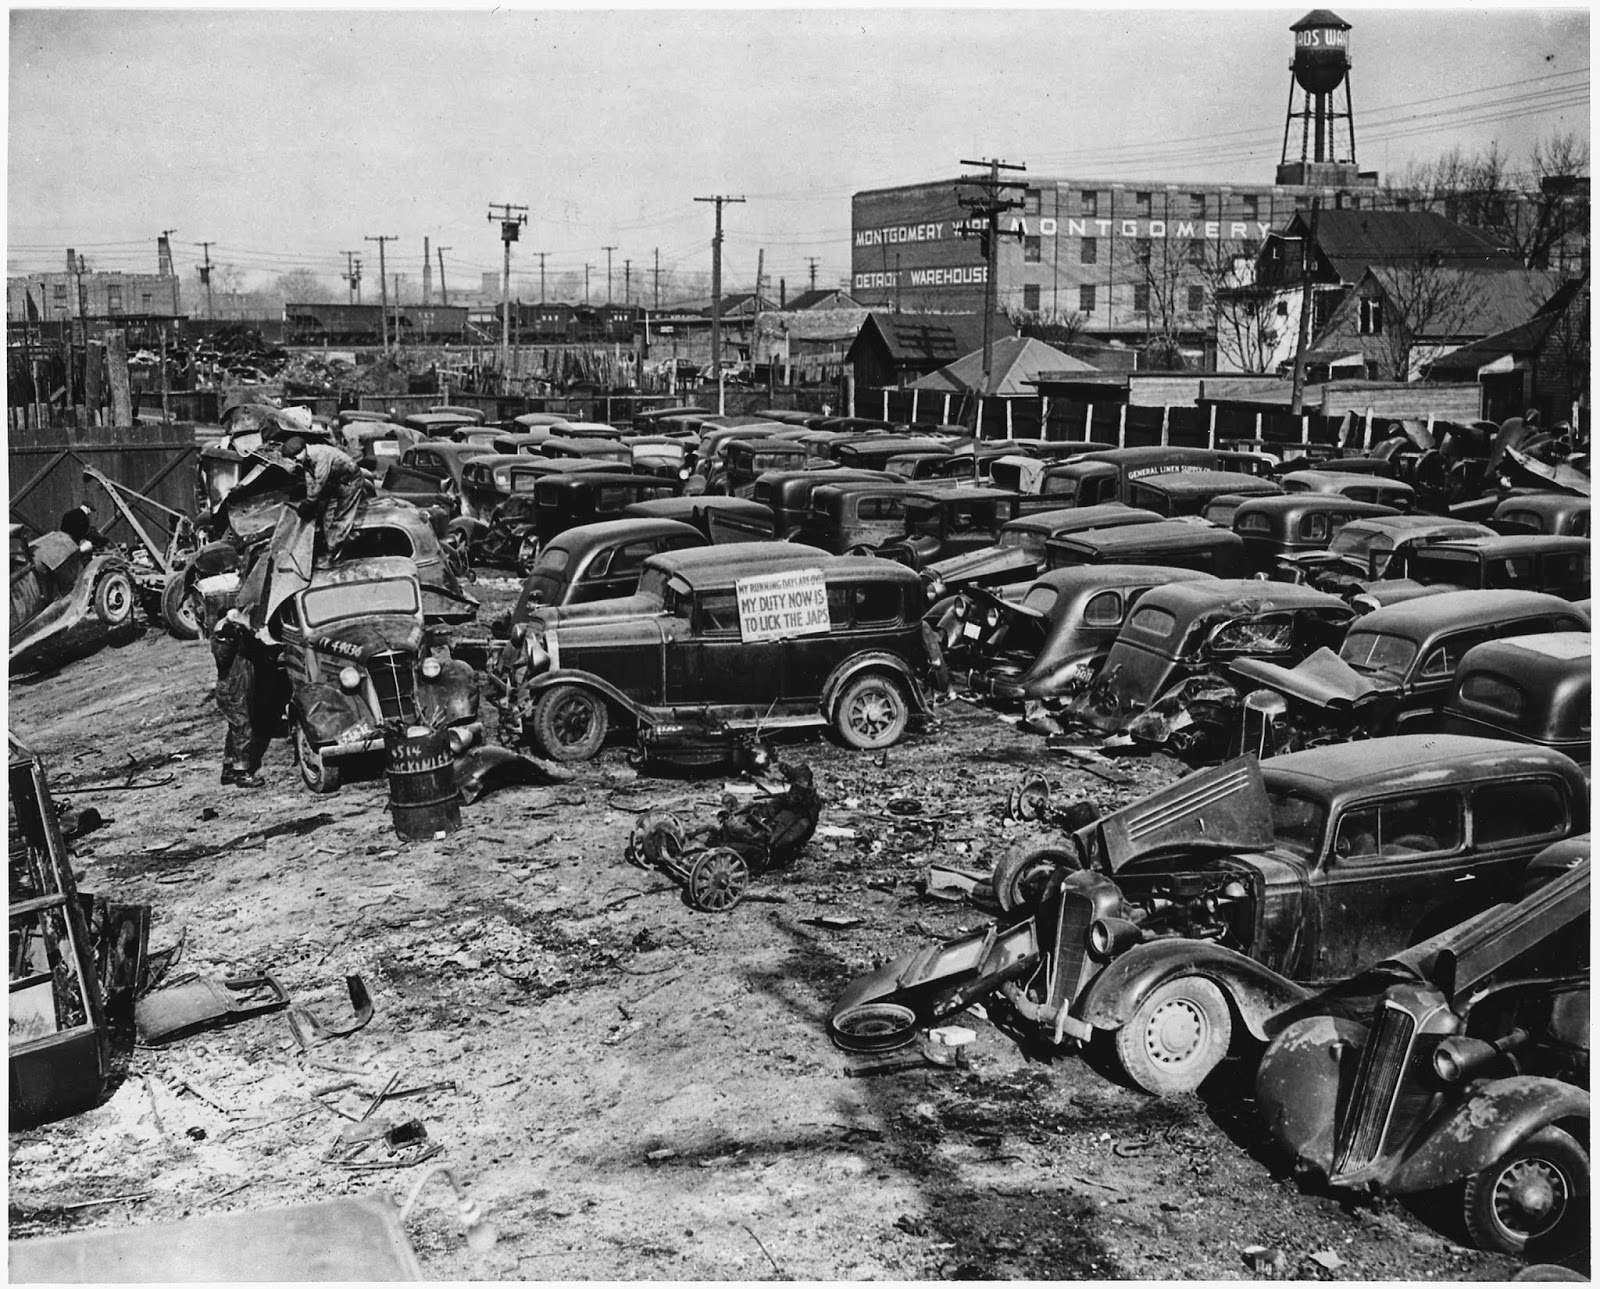 Philly Junk Yard: 1930s Cars Scraped and Crushed Into ...  |Junk Yard